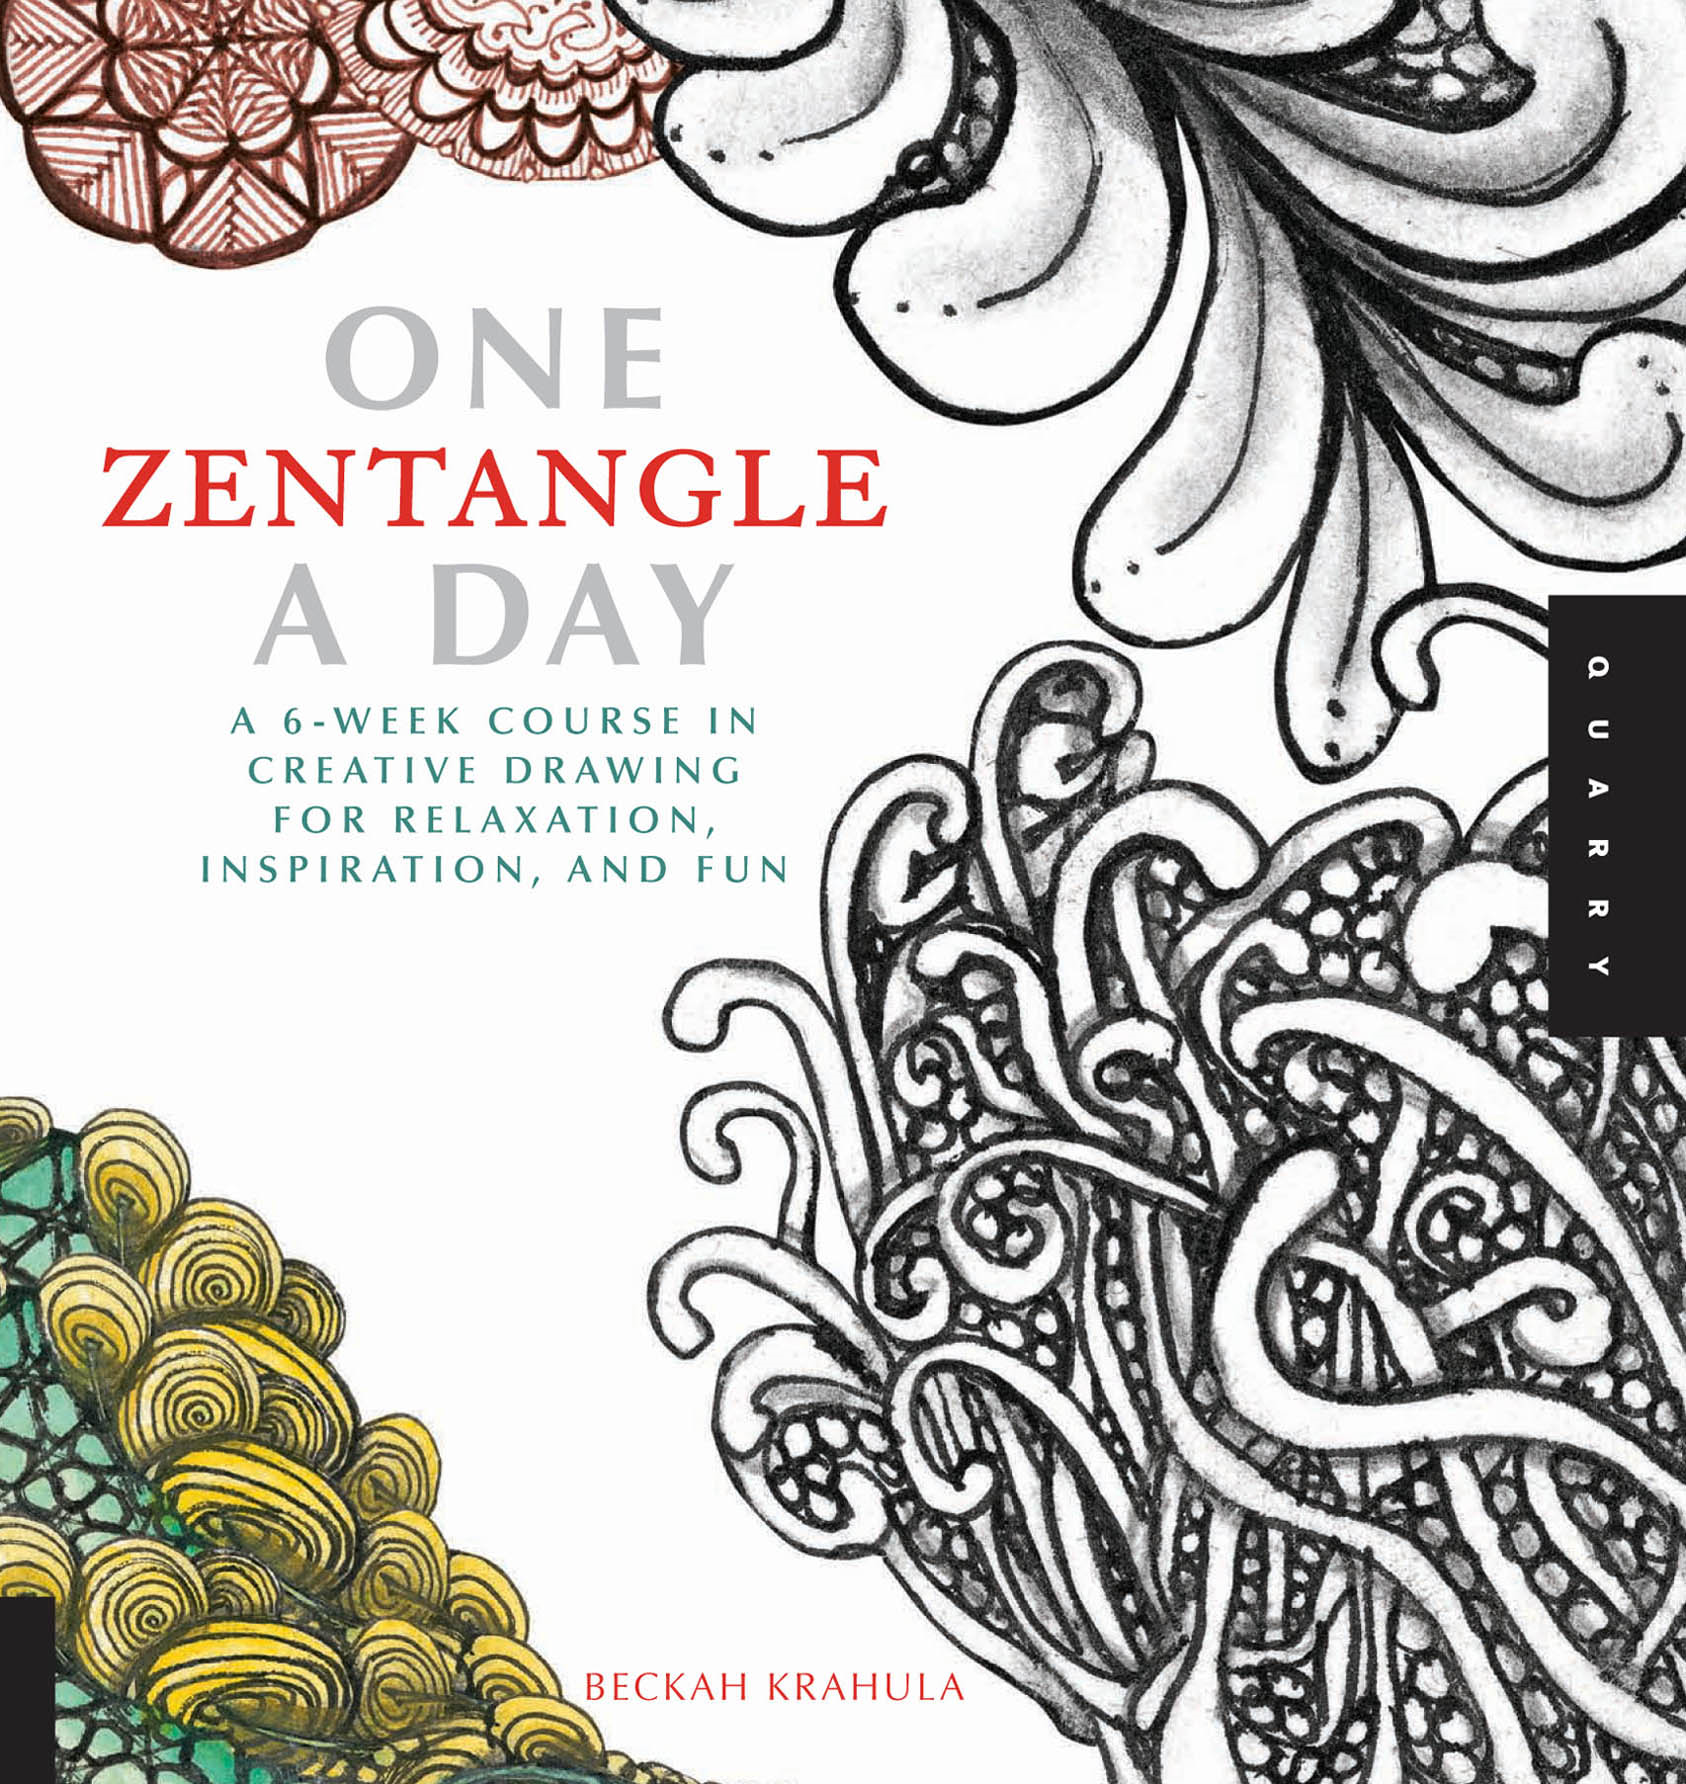 One Zentangle A Day By: Beckah Krahula